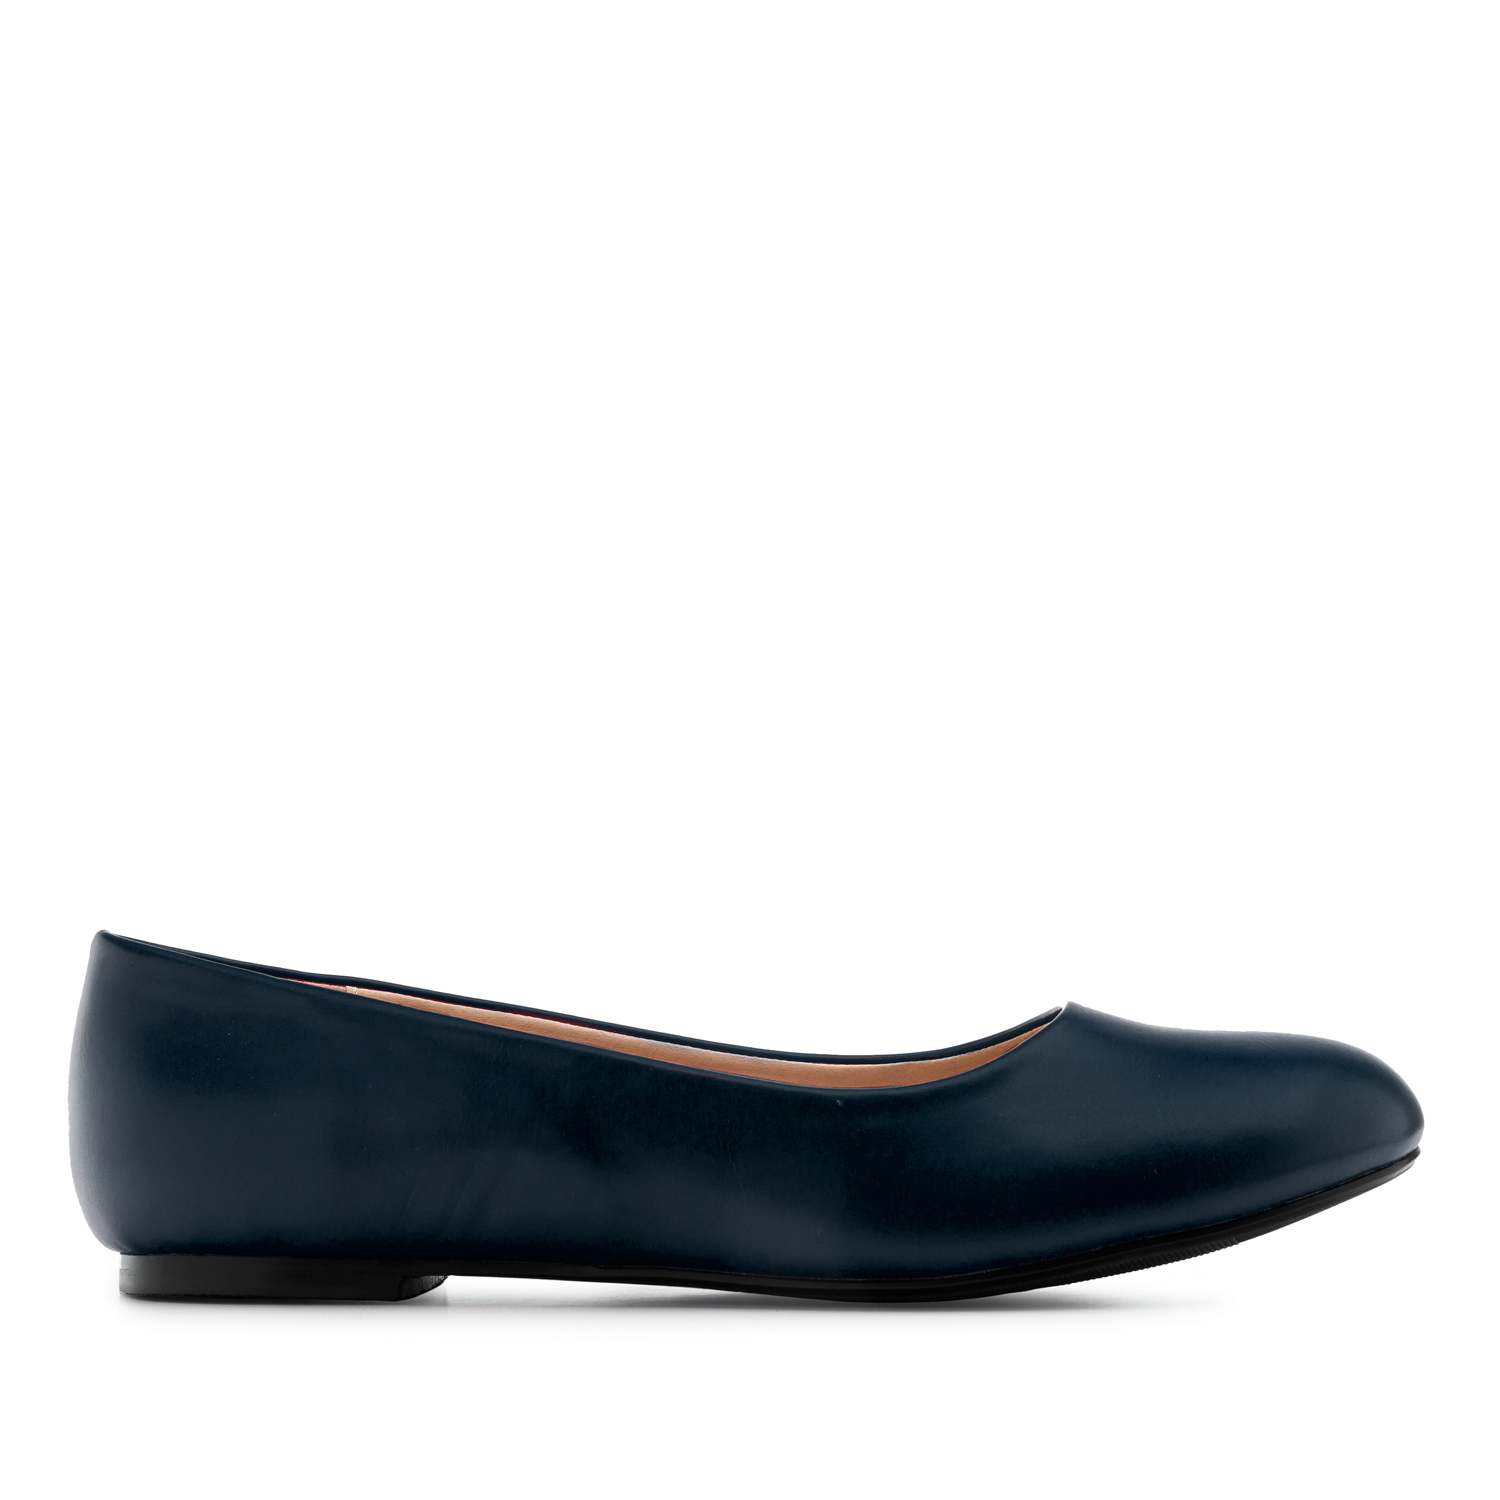 Plain Ballet Flats in Navy faux Leather